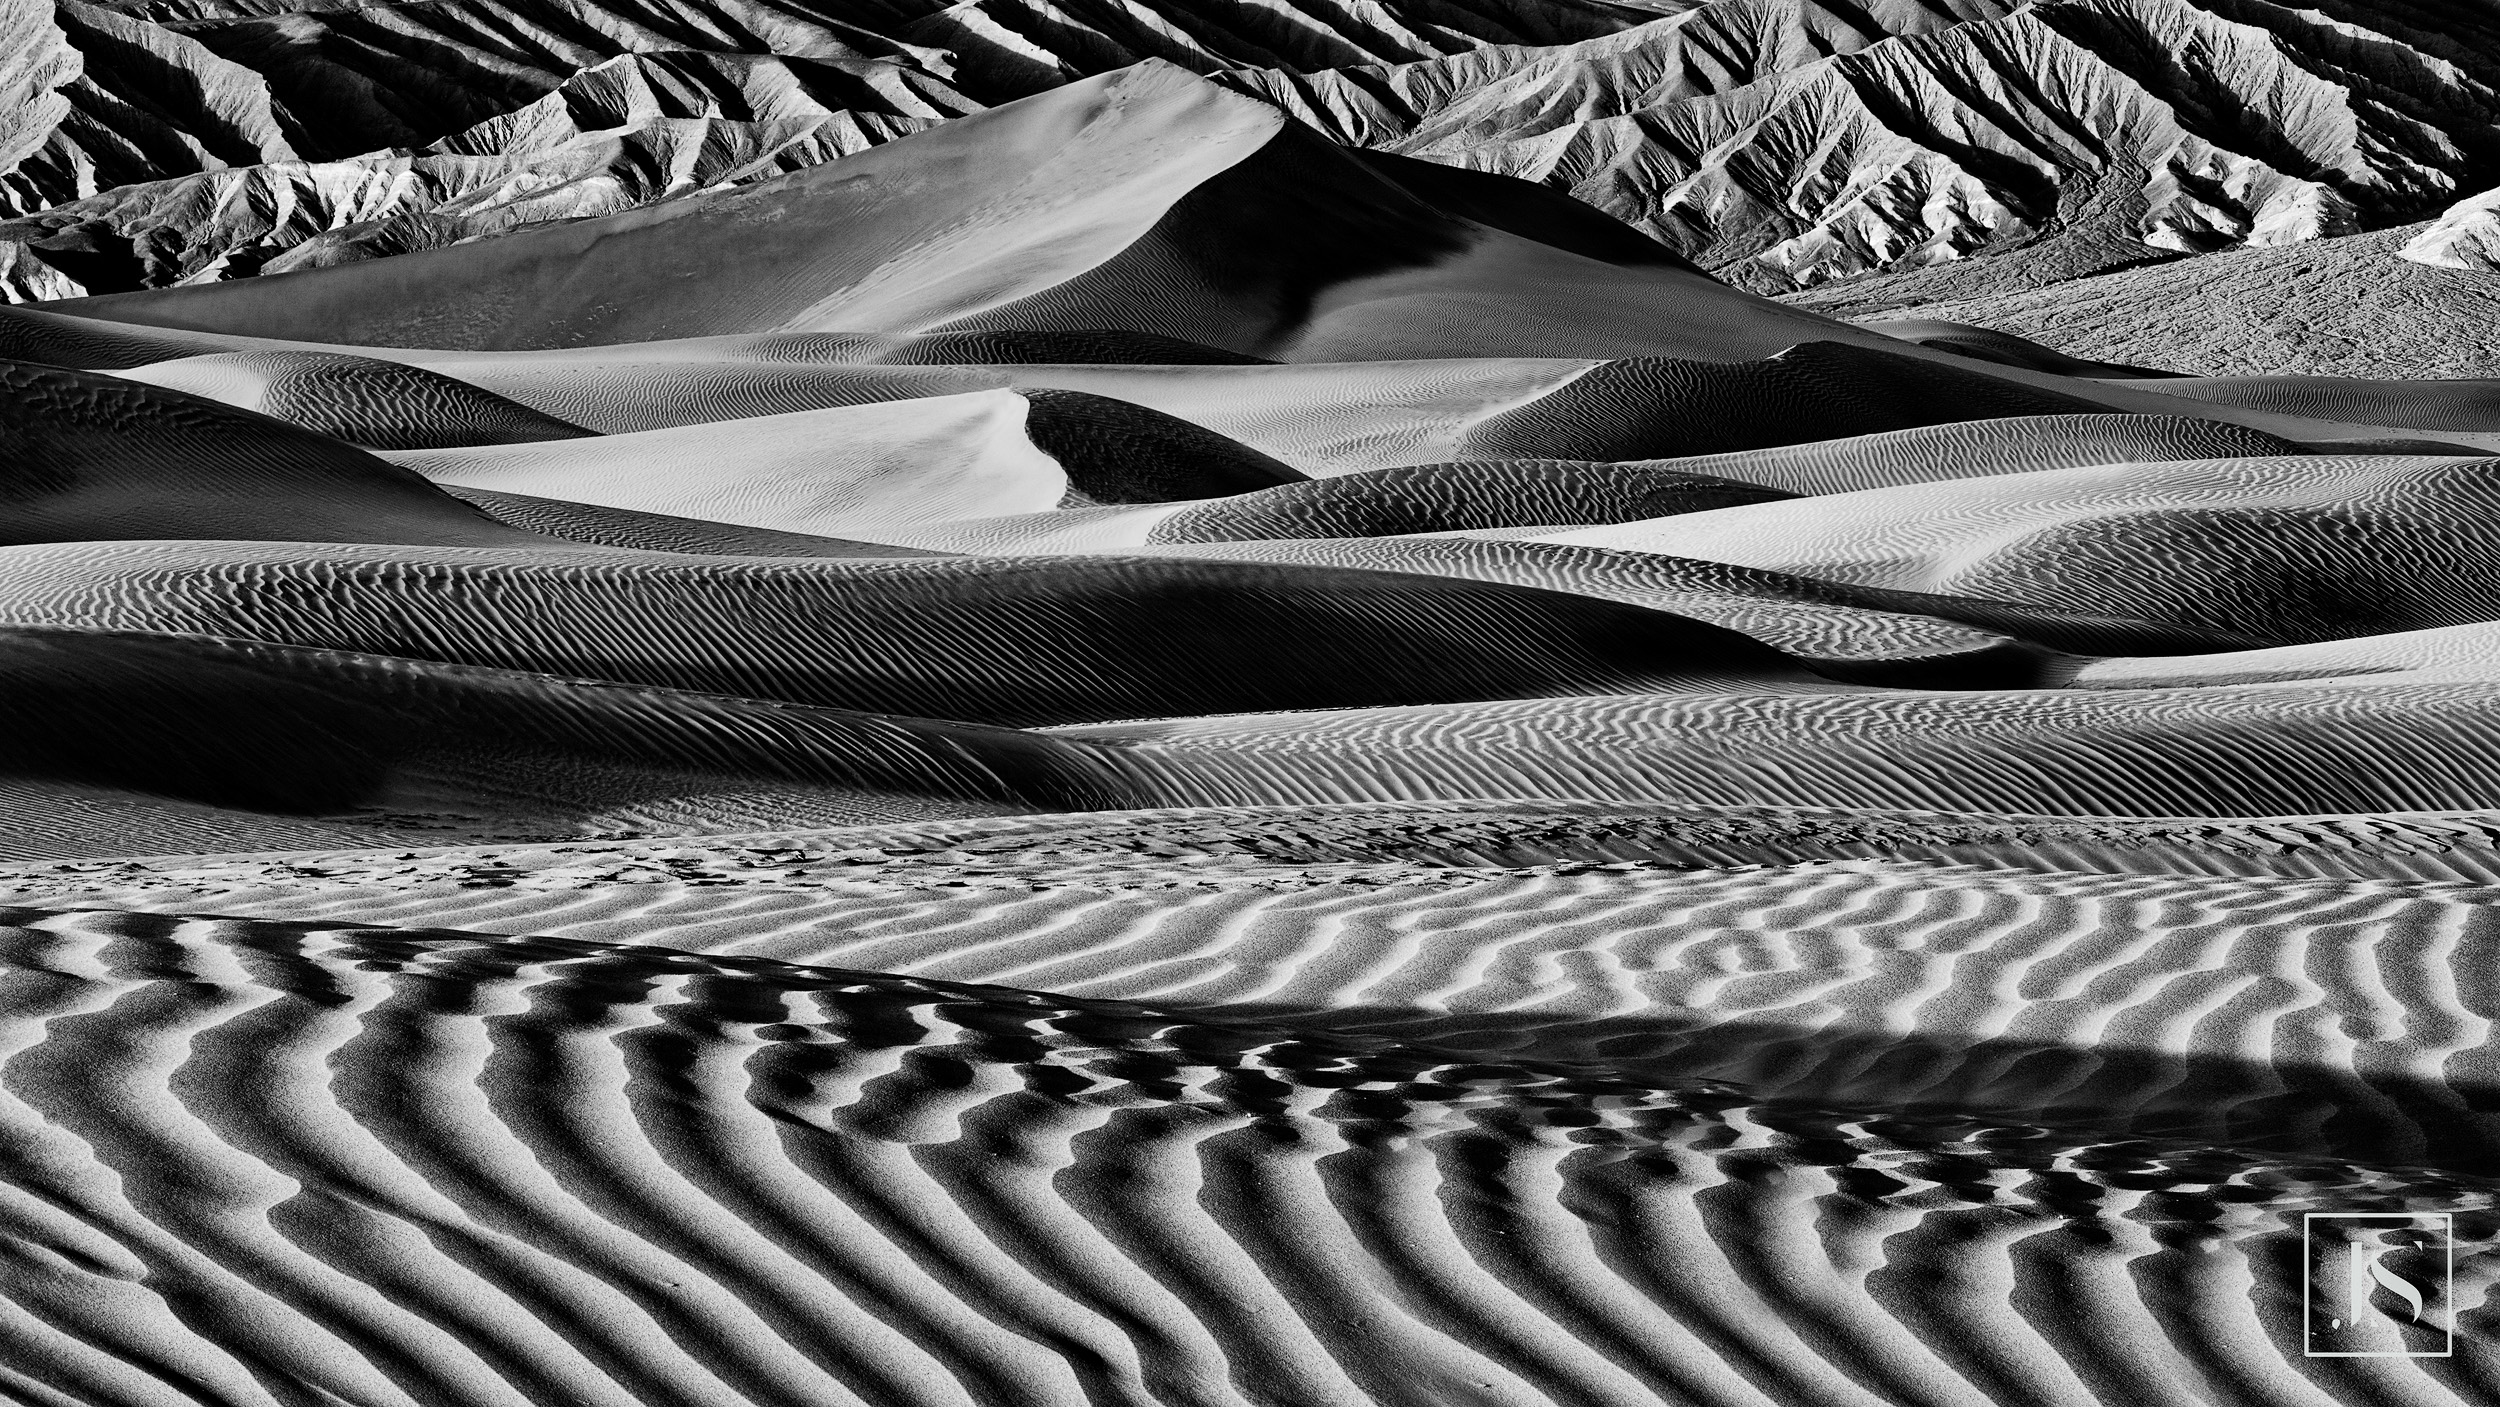 Patterns-Death Valley National Park, CA